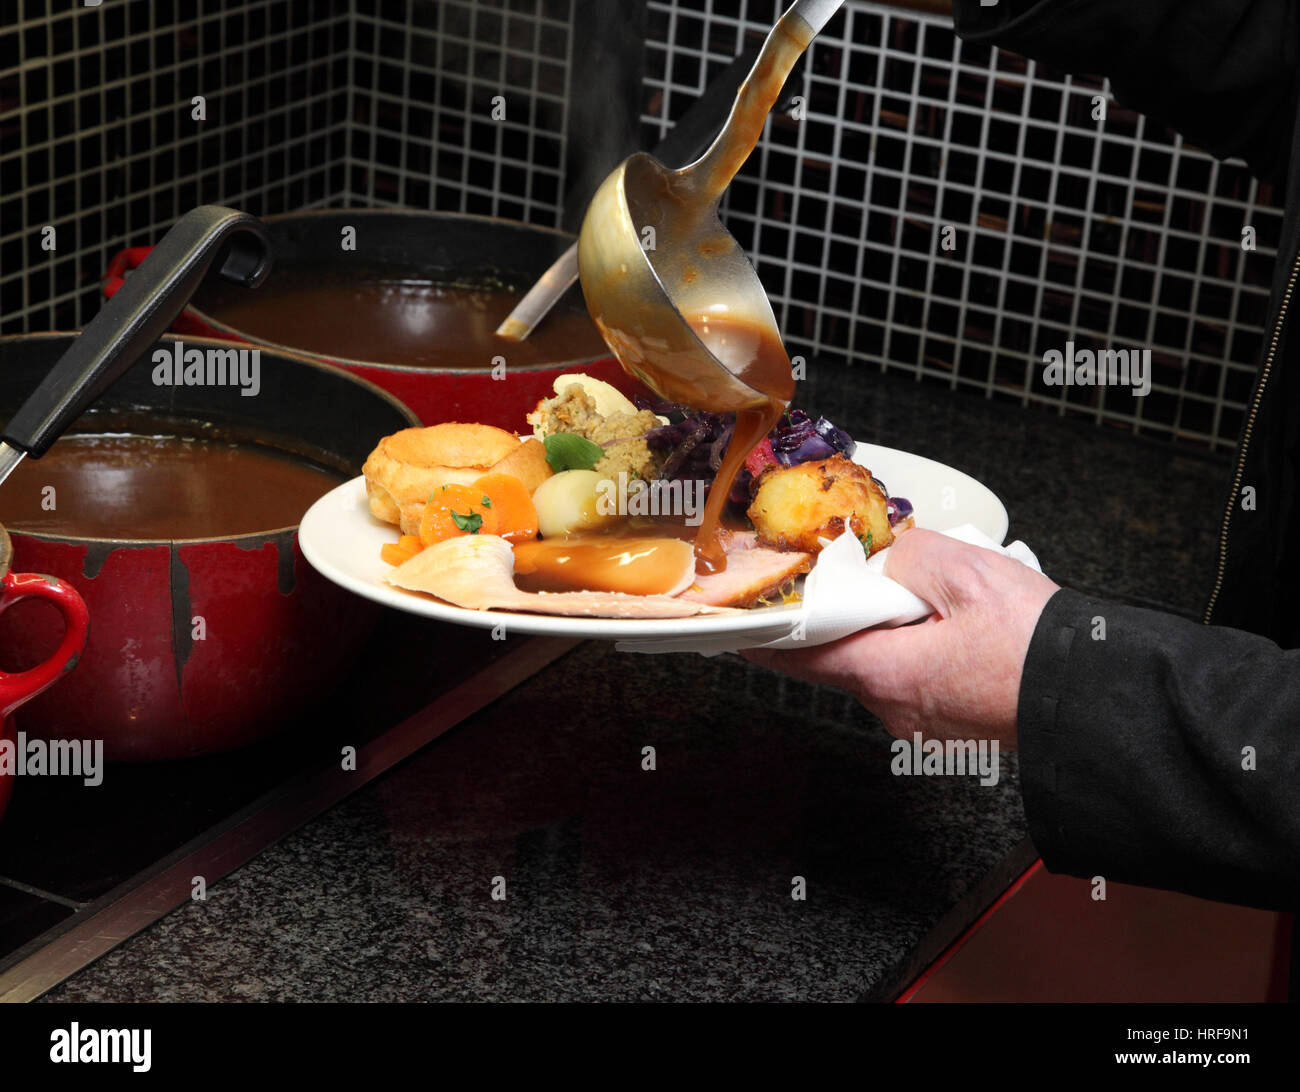 Loading a plate with vegetables and gravy at a Toby carvery pub. Stock Photo